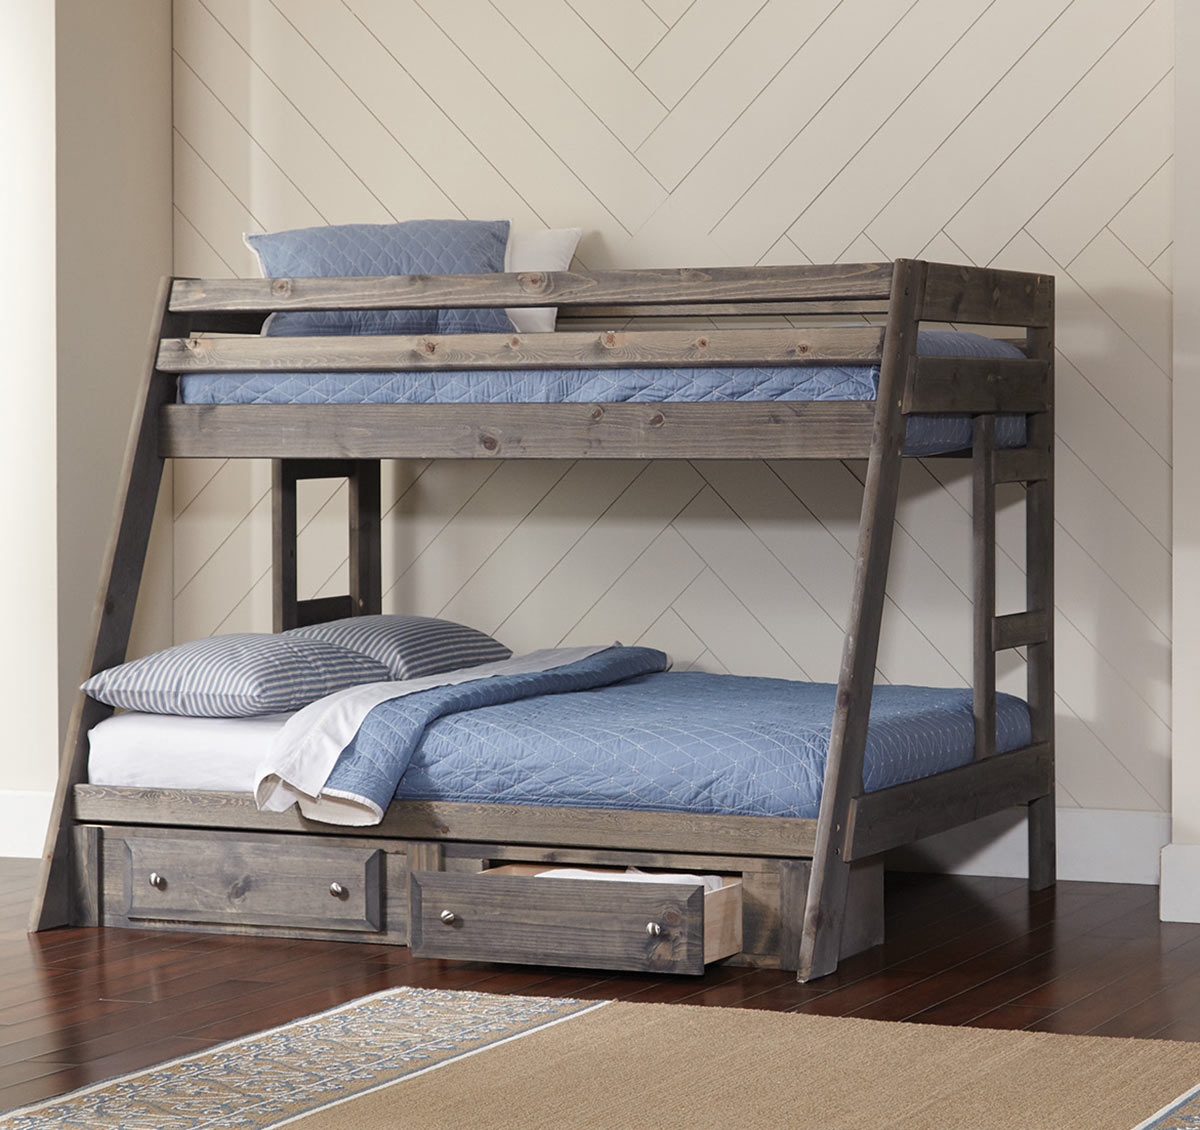 Coaster Wrangle Twin/Full Size Storage Bunk Bed - Gunsmoke